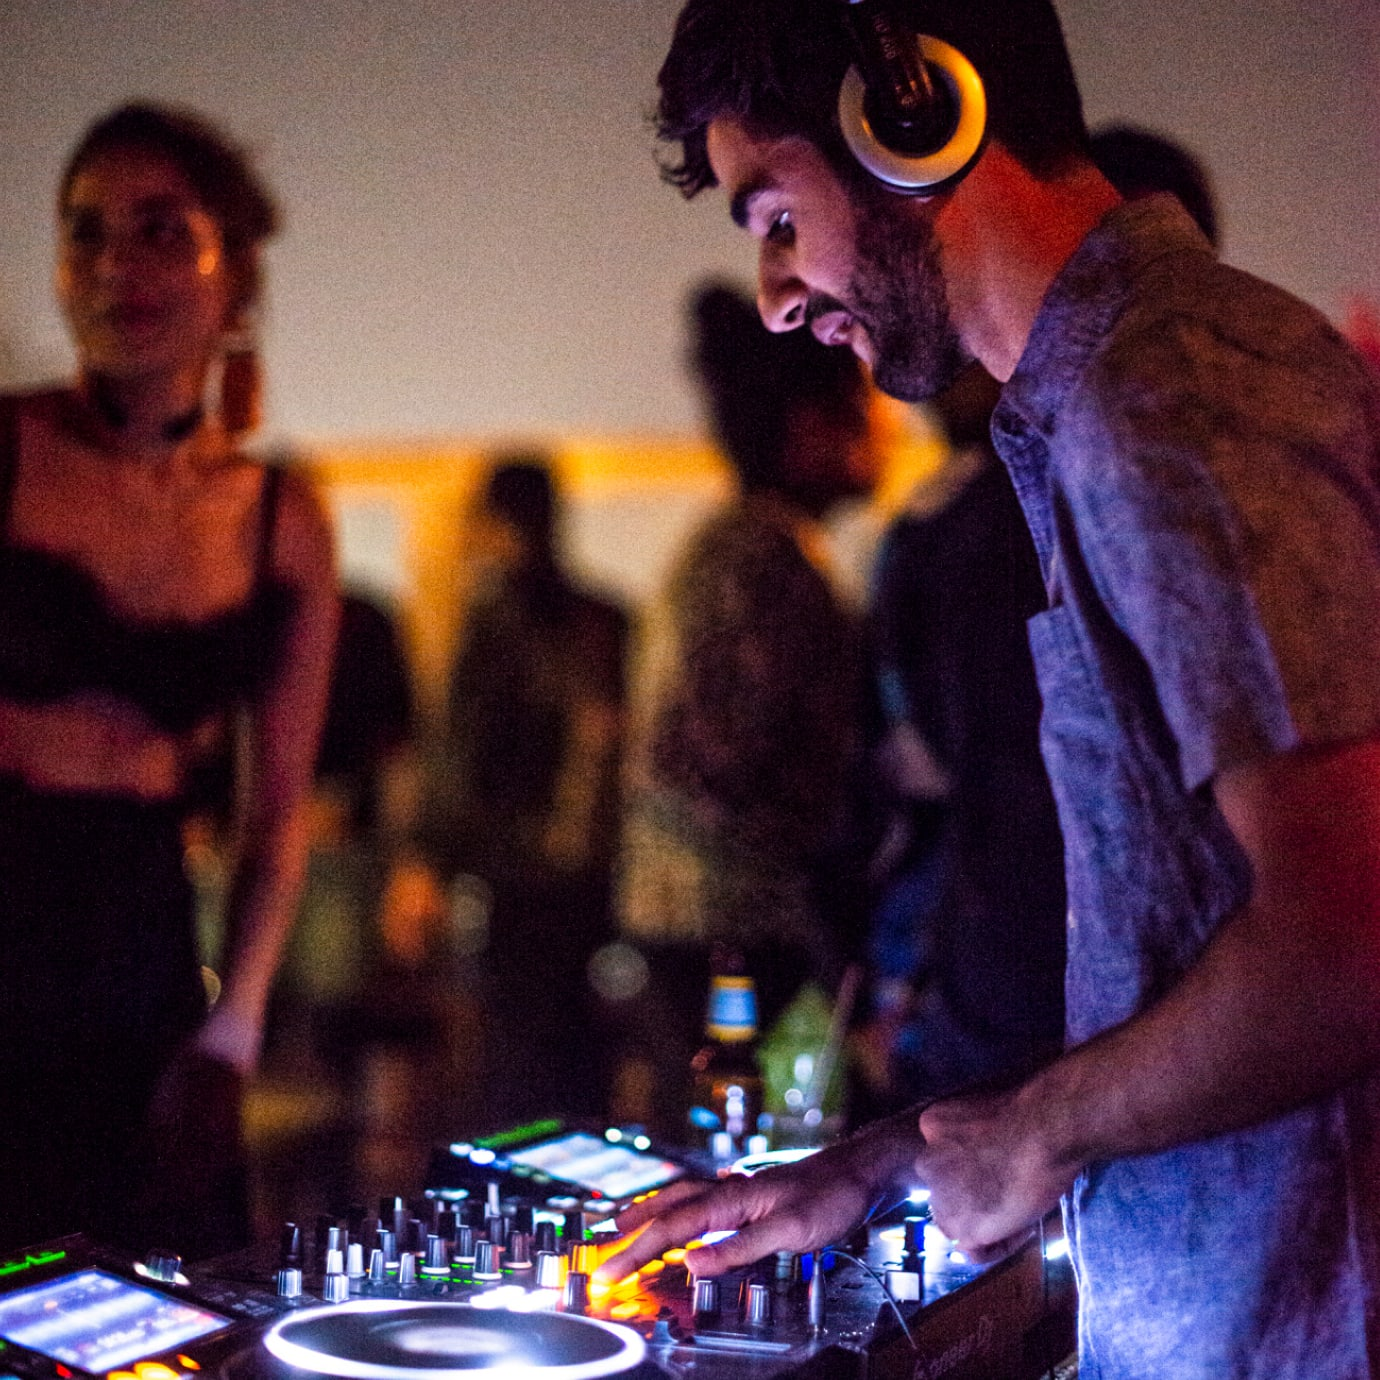 A man DJs on a rooftop with people dancing around him.